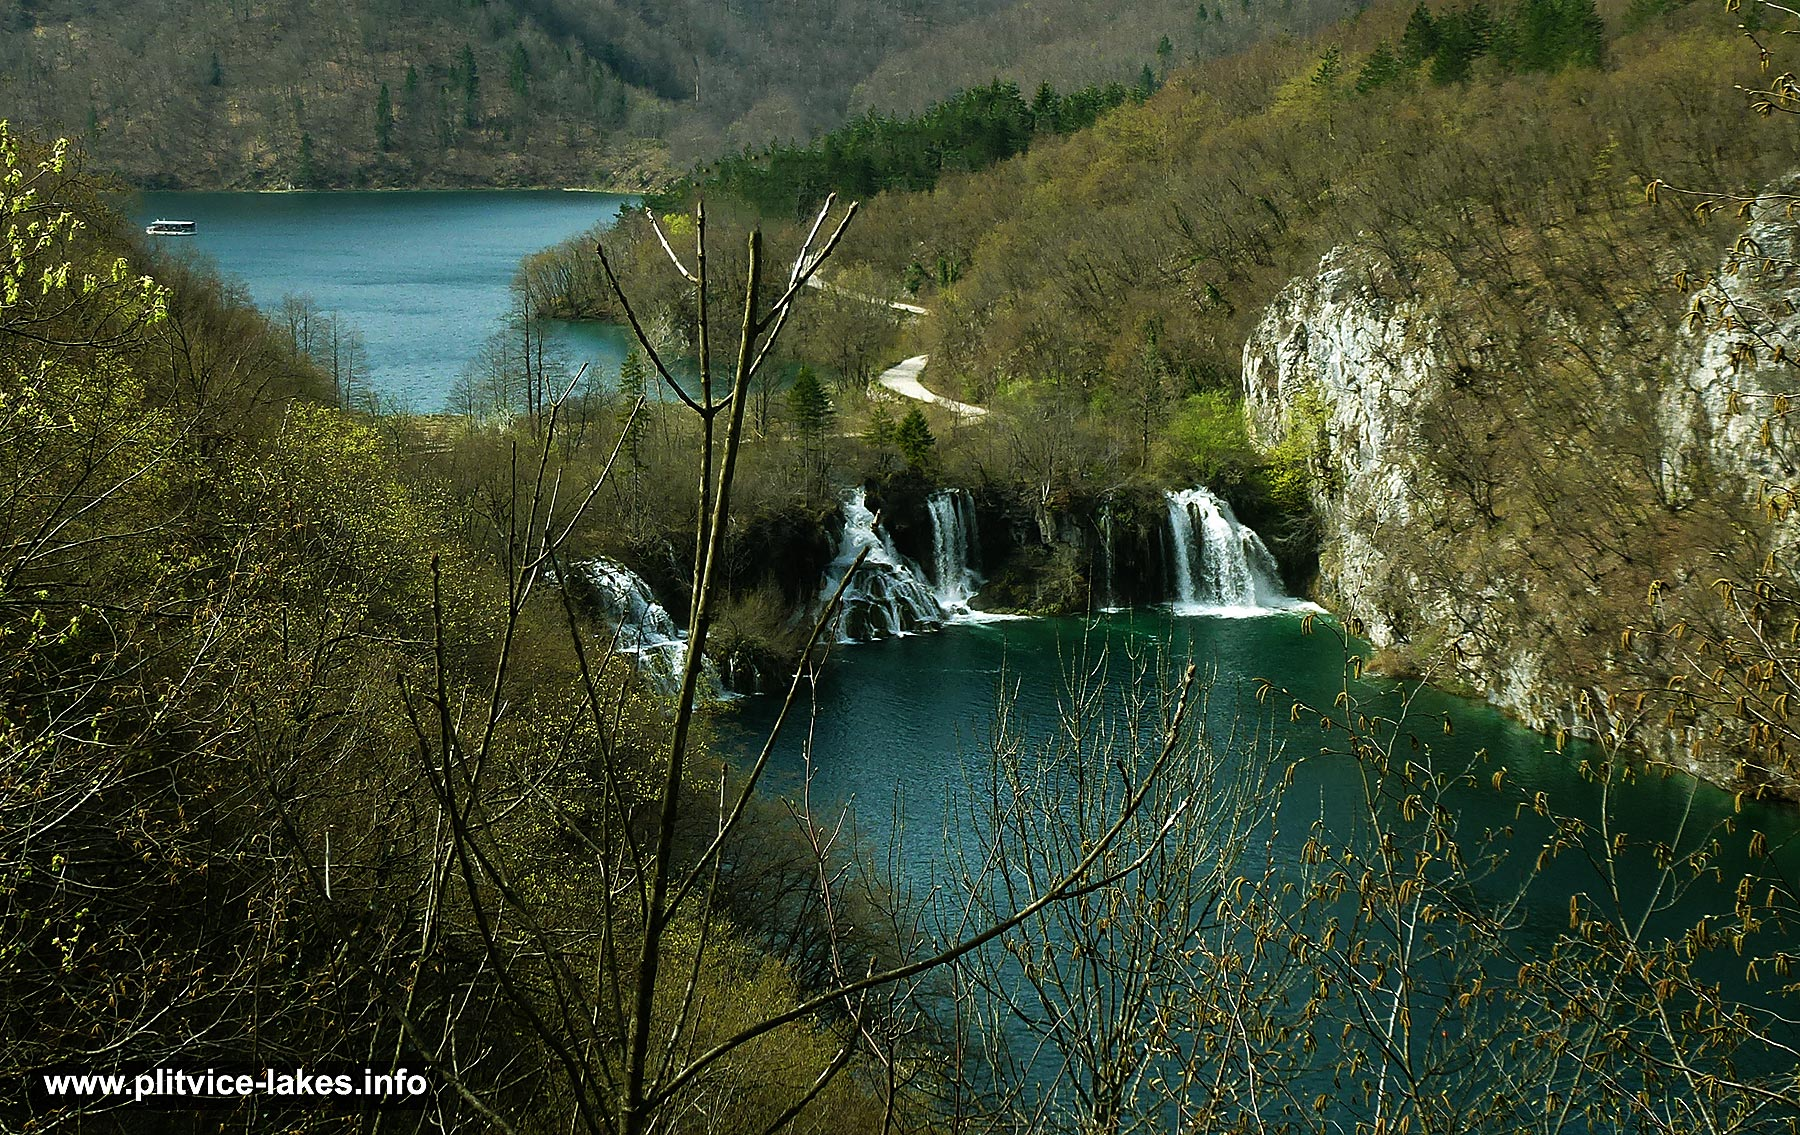 Milanovac Lake , Waterfalls and Kozjak in the background